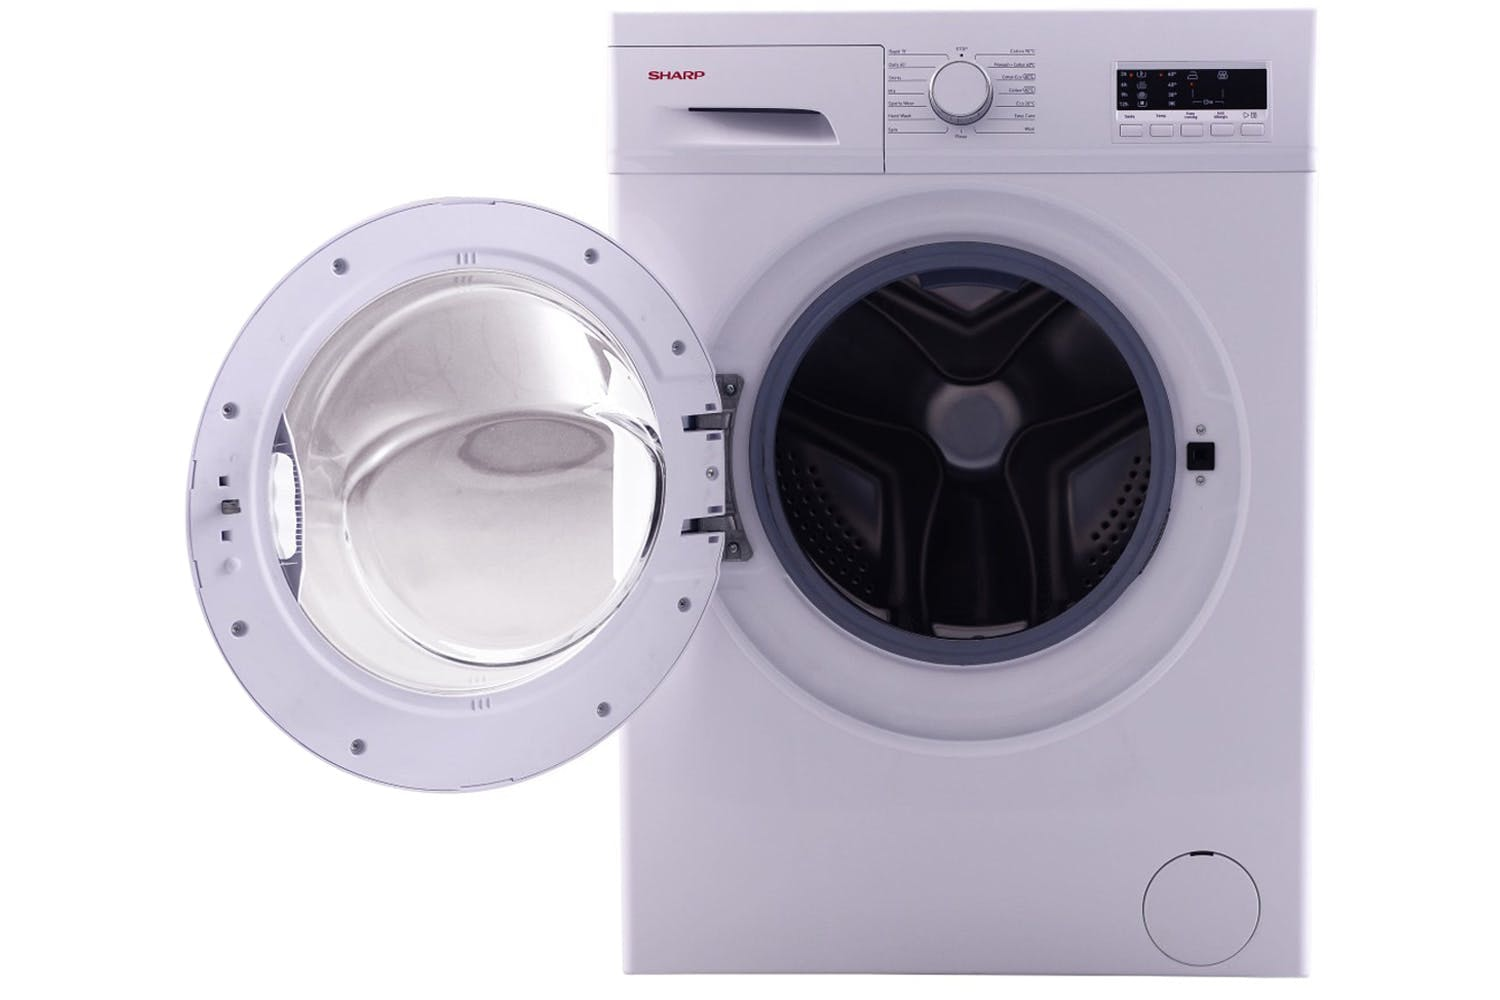 Sharp 6kg Freestanding Washing Machine | ESFA6123W2